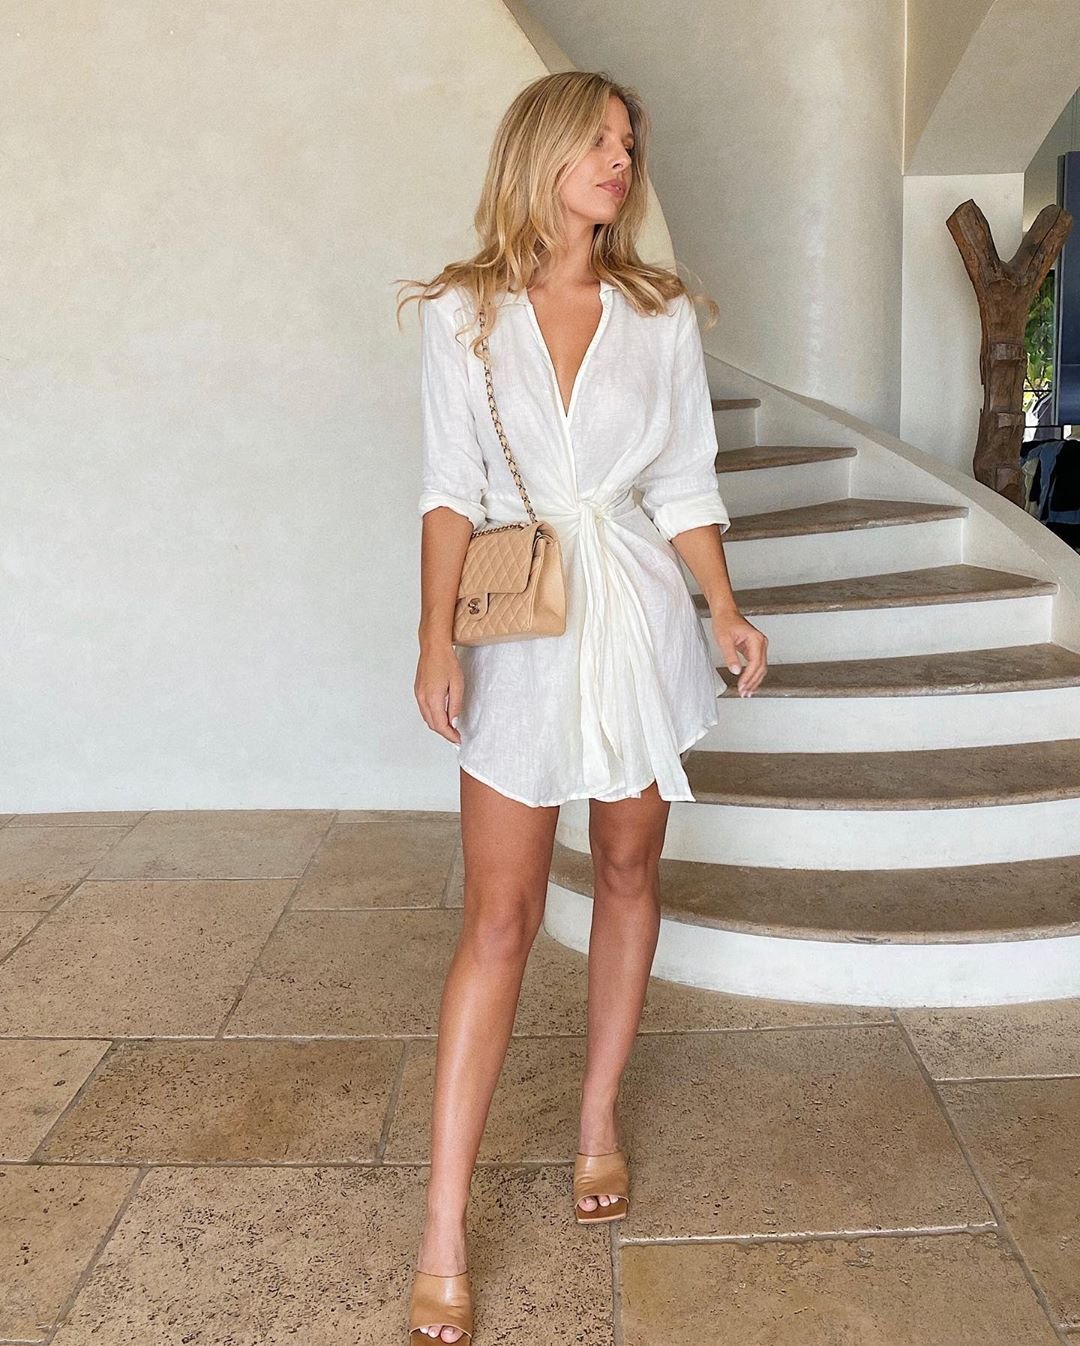 Natasha Oakley rocking a Ivory linen Monday Swimwear mini dress with a linen fabric, 3/4 sleeves, a V-neck, cinched waist and curved hem